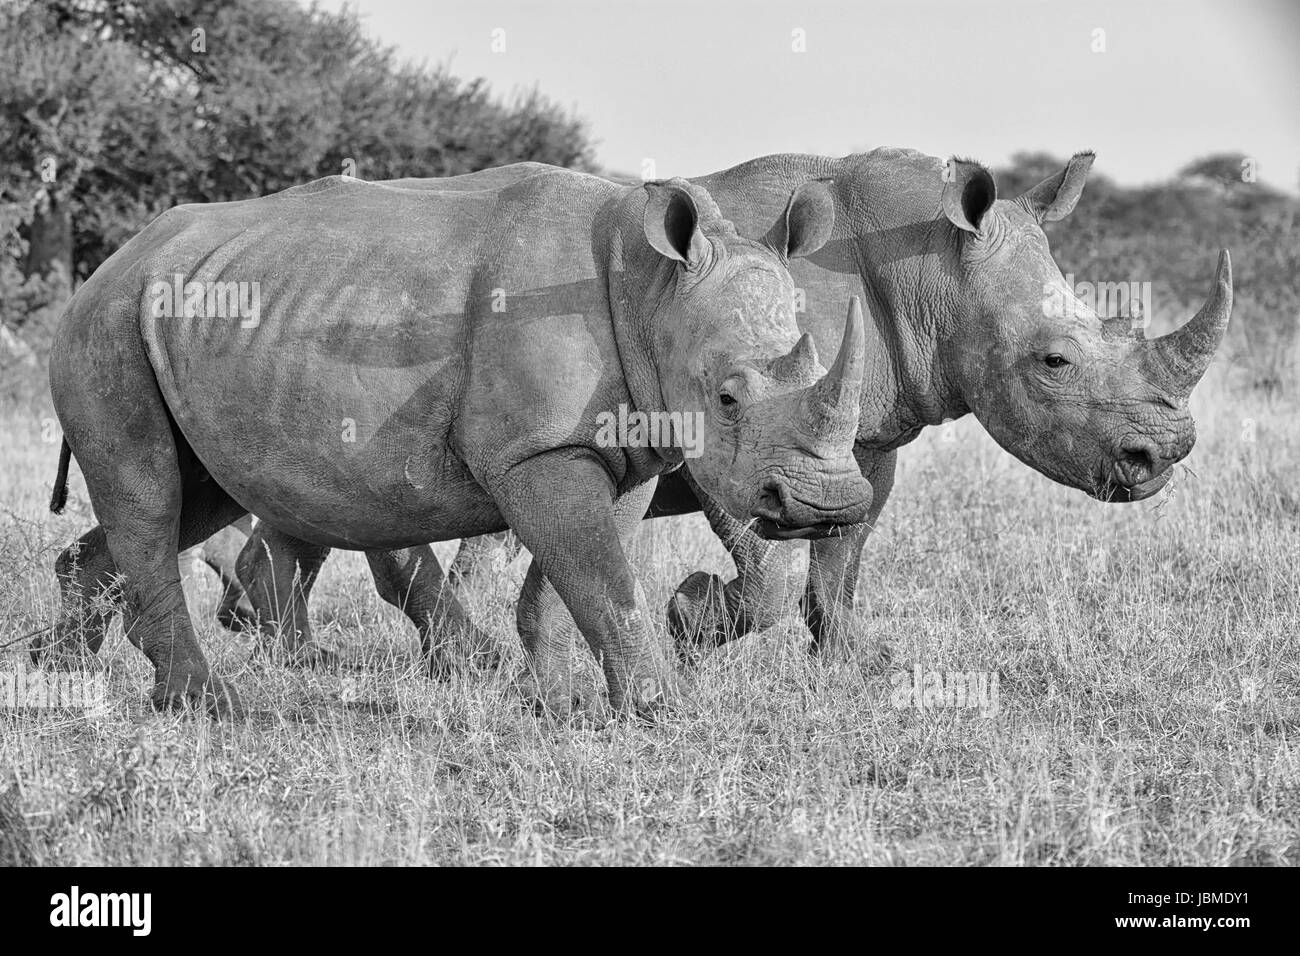 A pair of adult White Rhinos walking in savanna in Southern Africa - Stock Photo